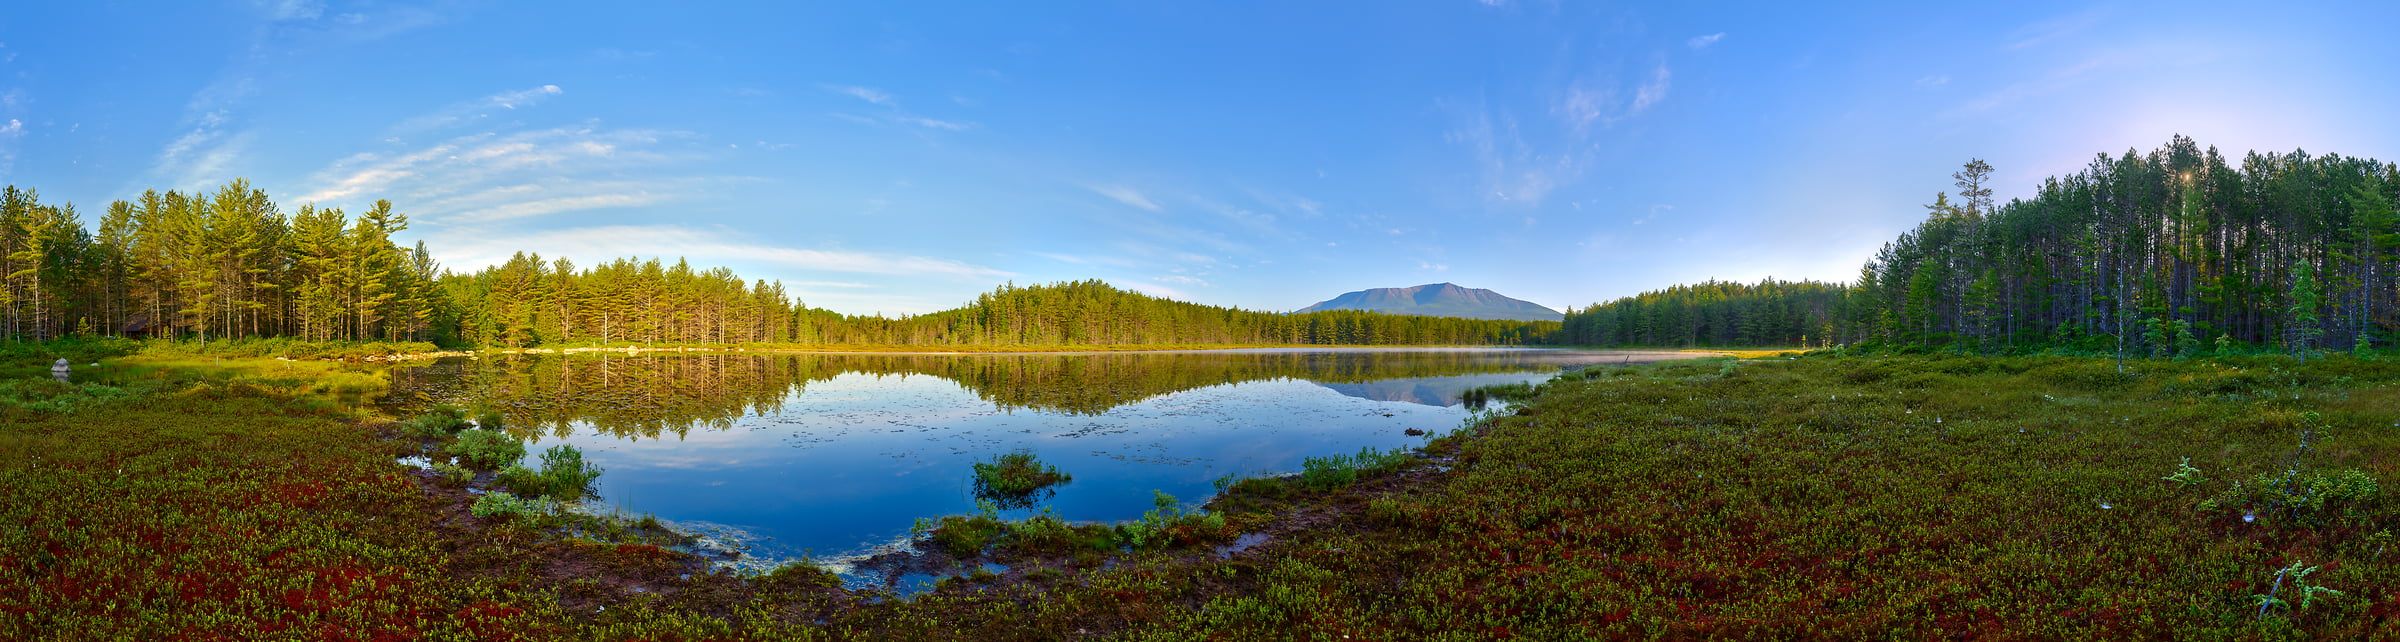 494 megapixels! A very high resolution, large-format VAST photo of Mt. Katahdin and Sunday Pond; fine art landscape photograph created by Aaron Priest in Baxter State Park, Maine